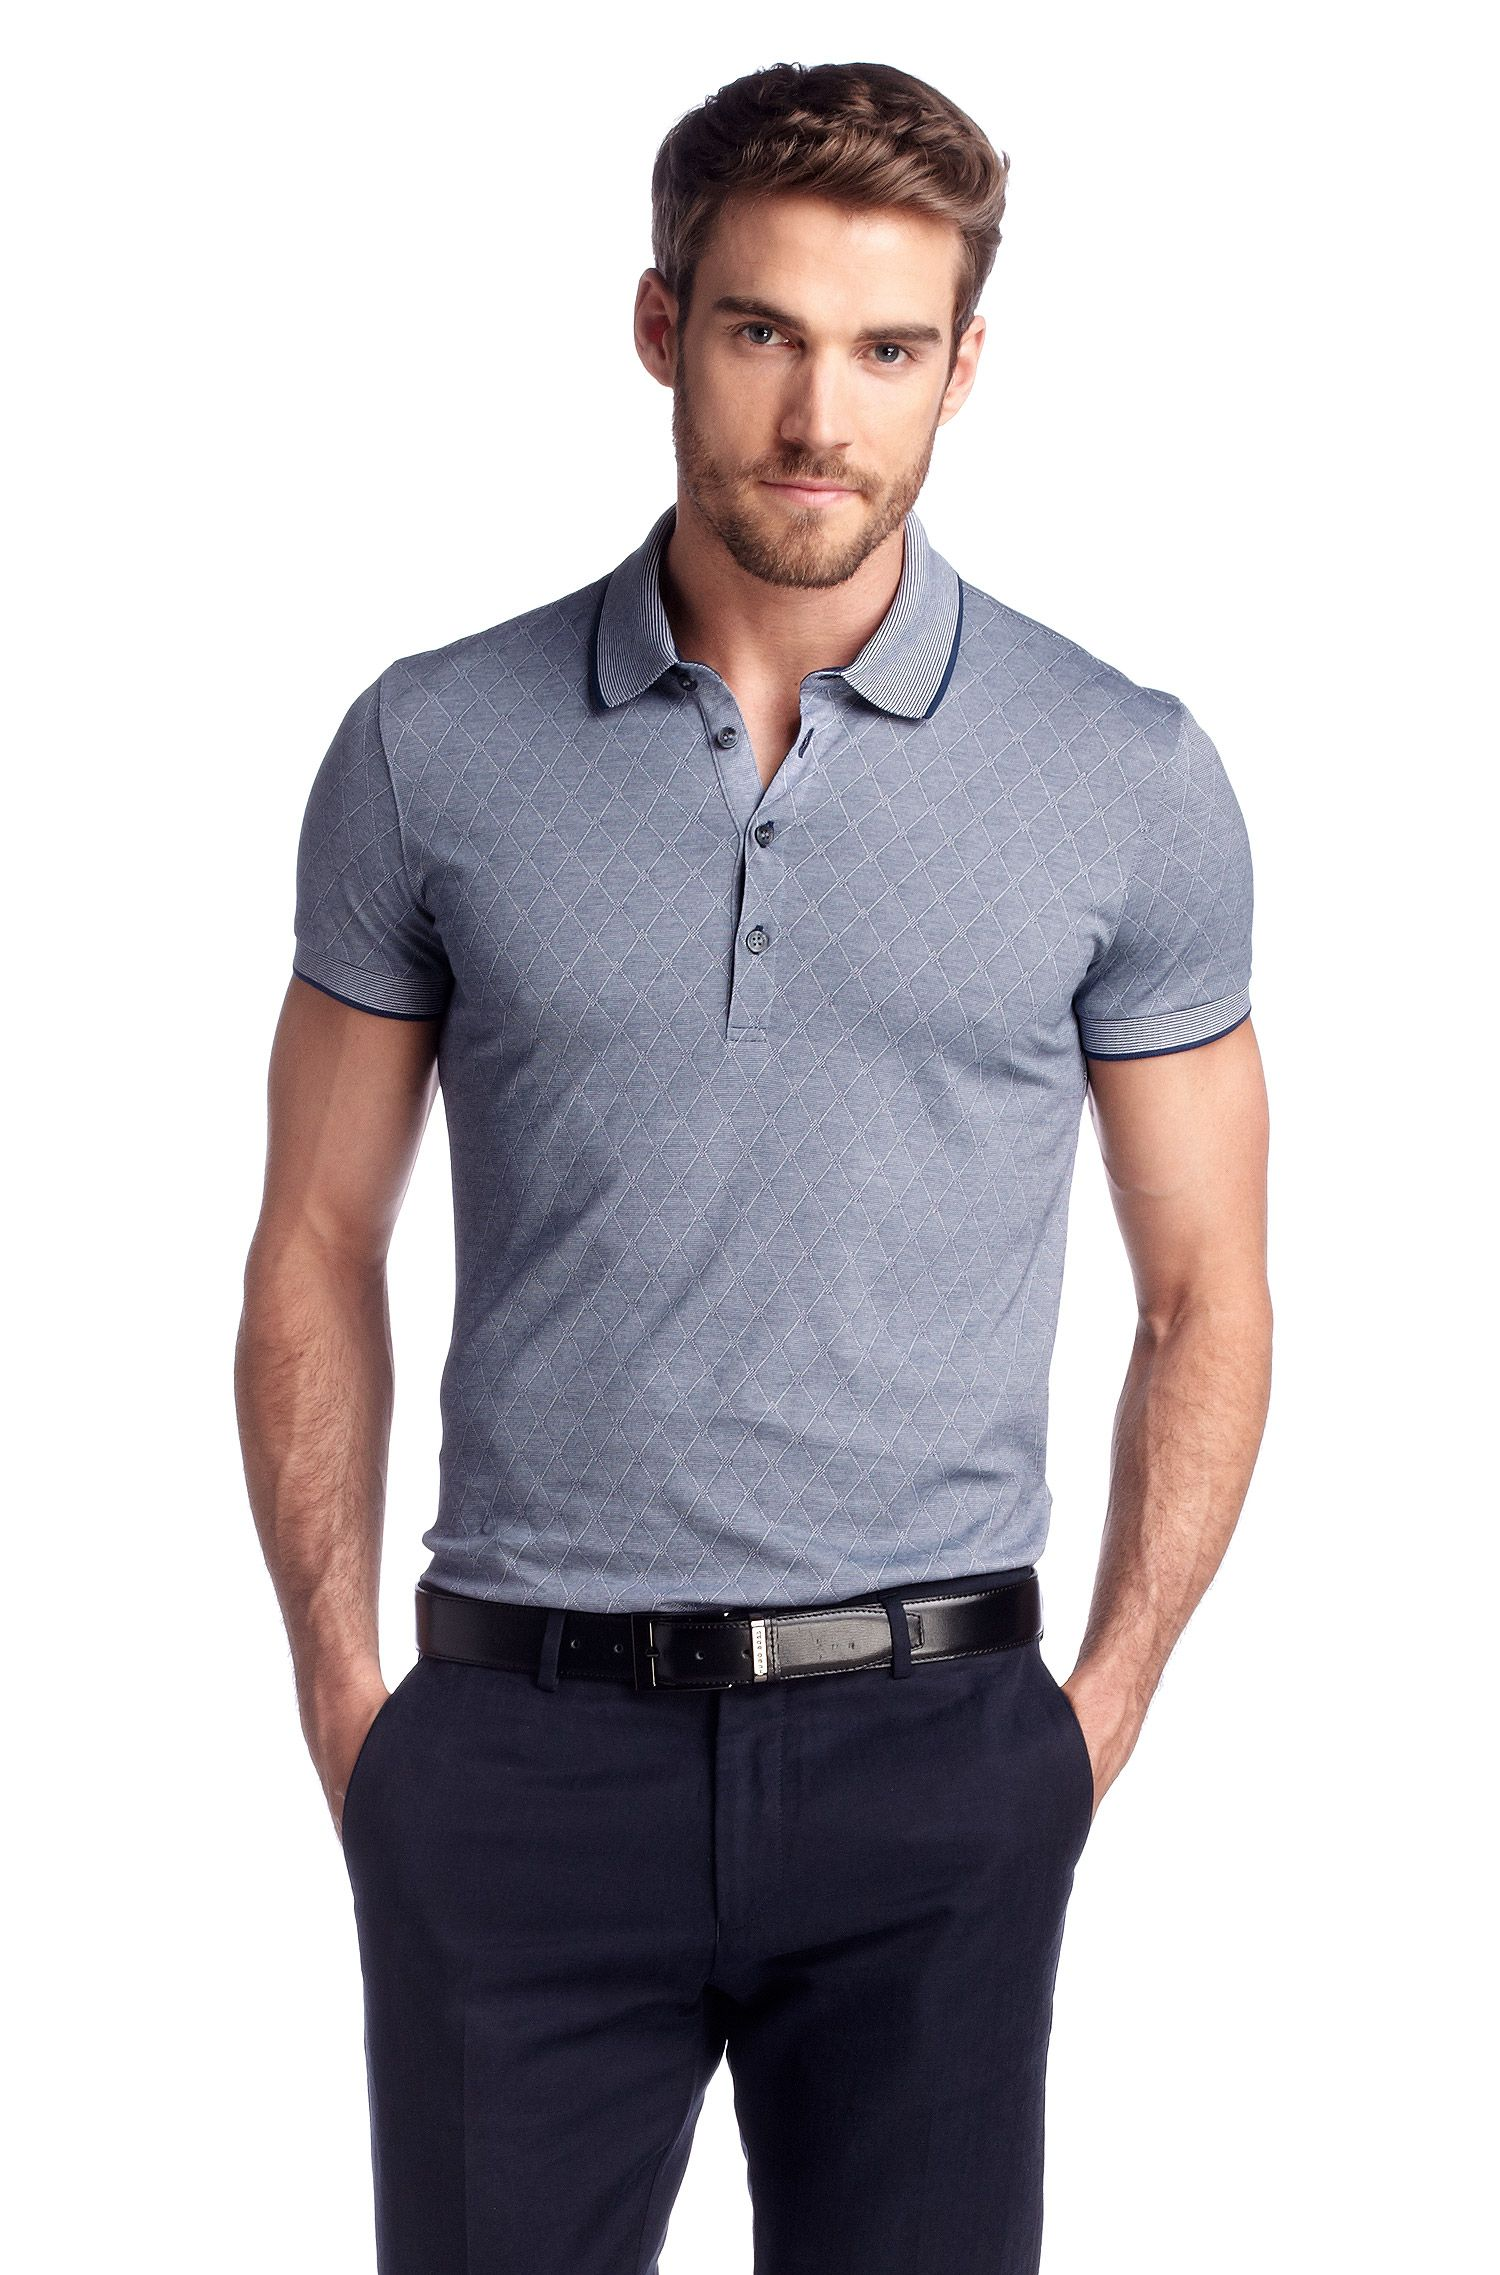 Polo ´Padria 04` (slim fit)